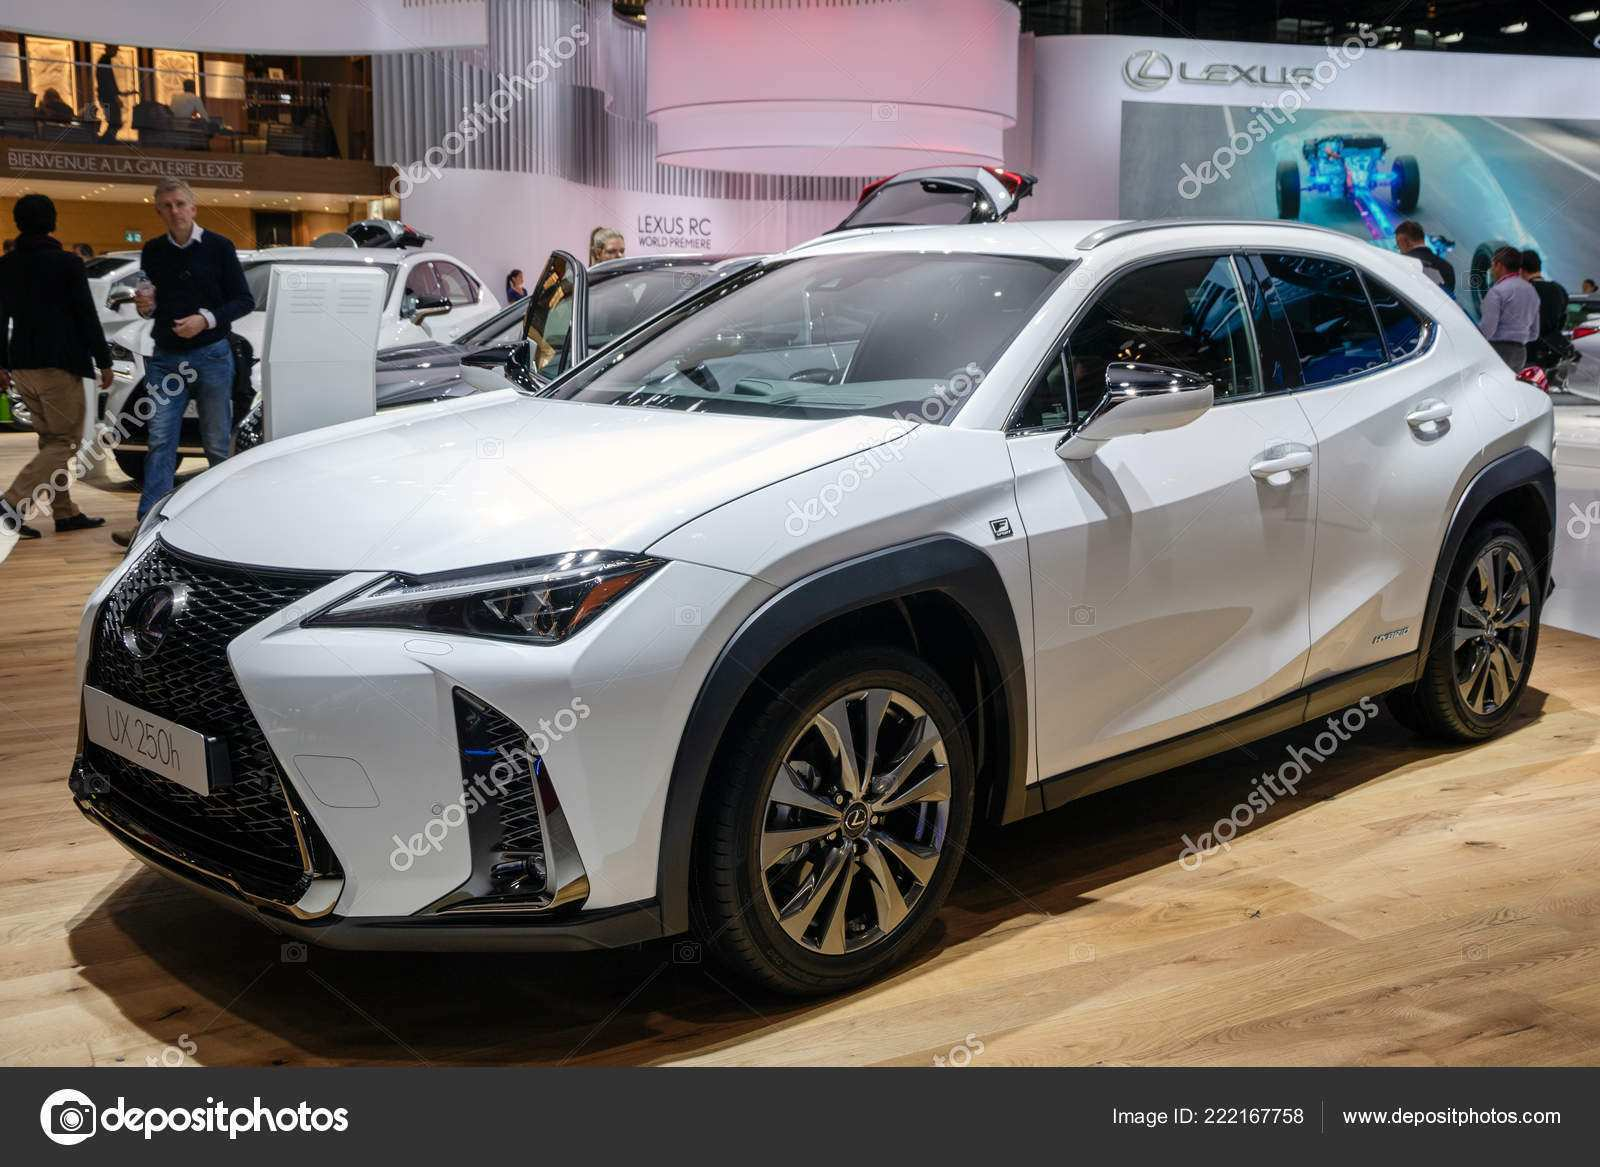 33 All New 2019 Lexus IS 250 Redesign And Concept